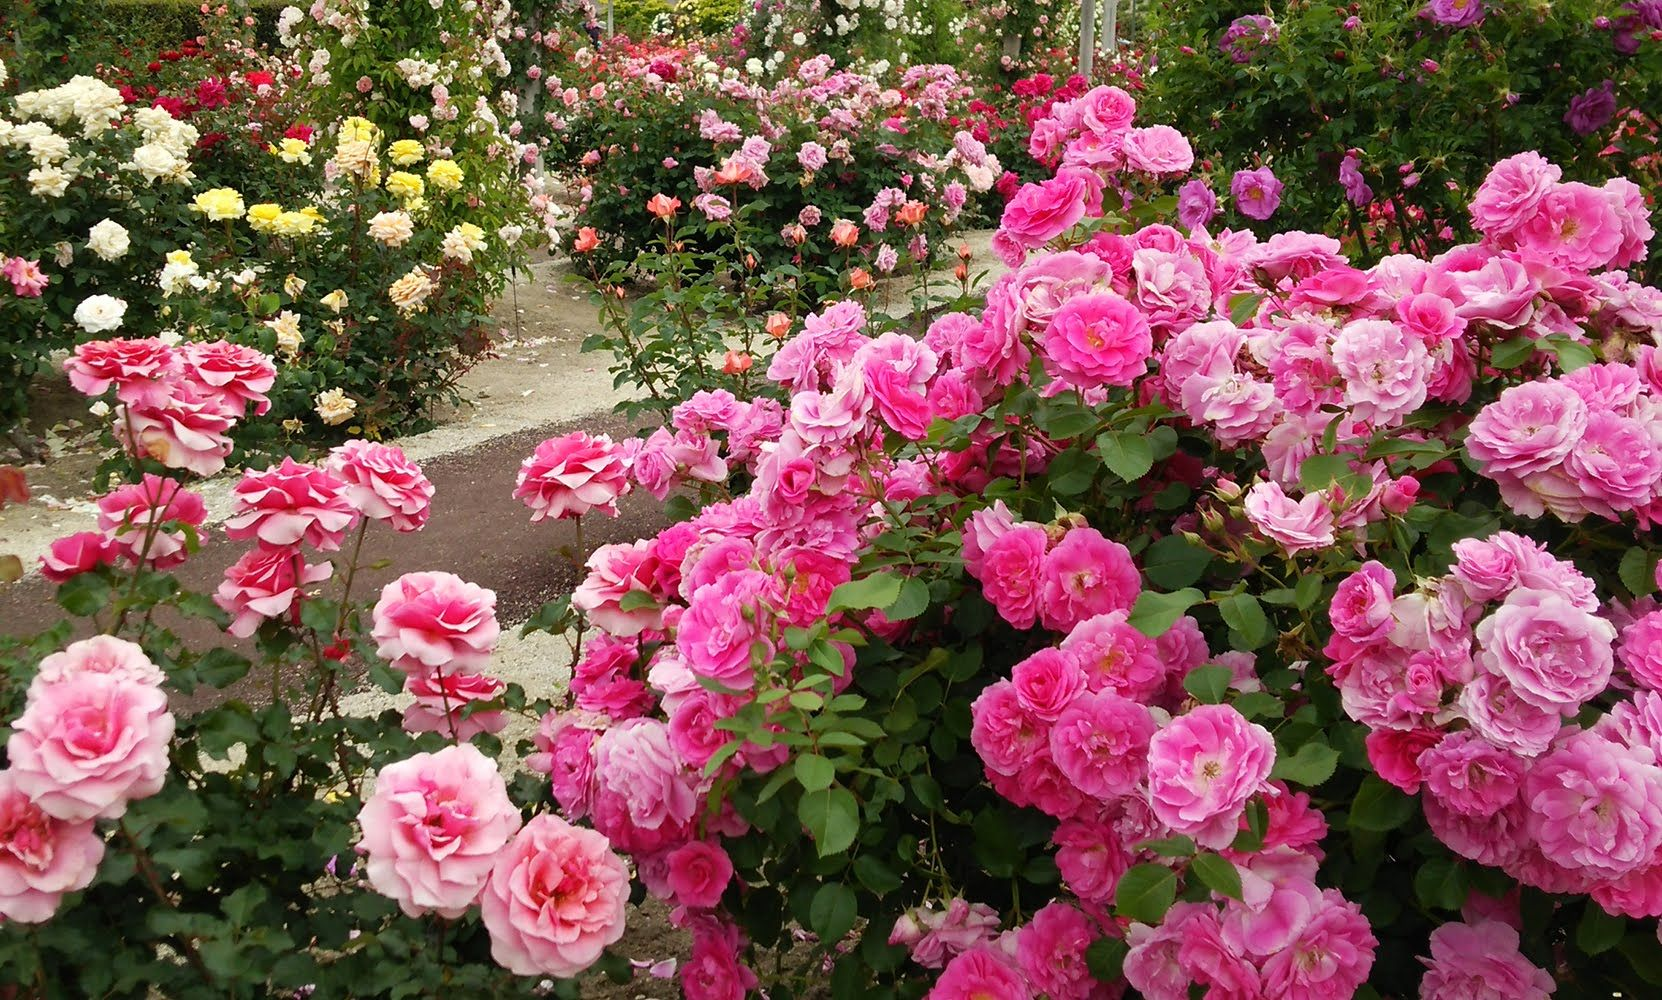 4k most beautiful rose flowers flower shrubs and colorful garden that - Most Beautiful Rose Gardens In The World